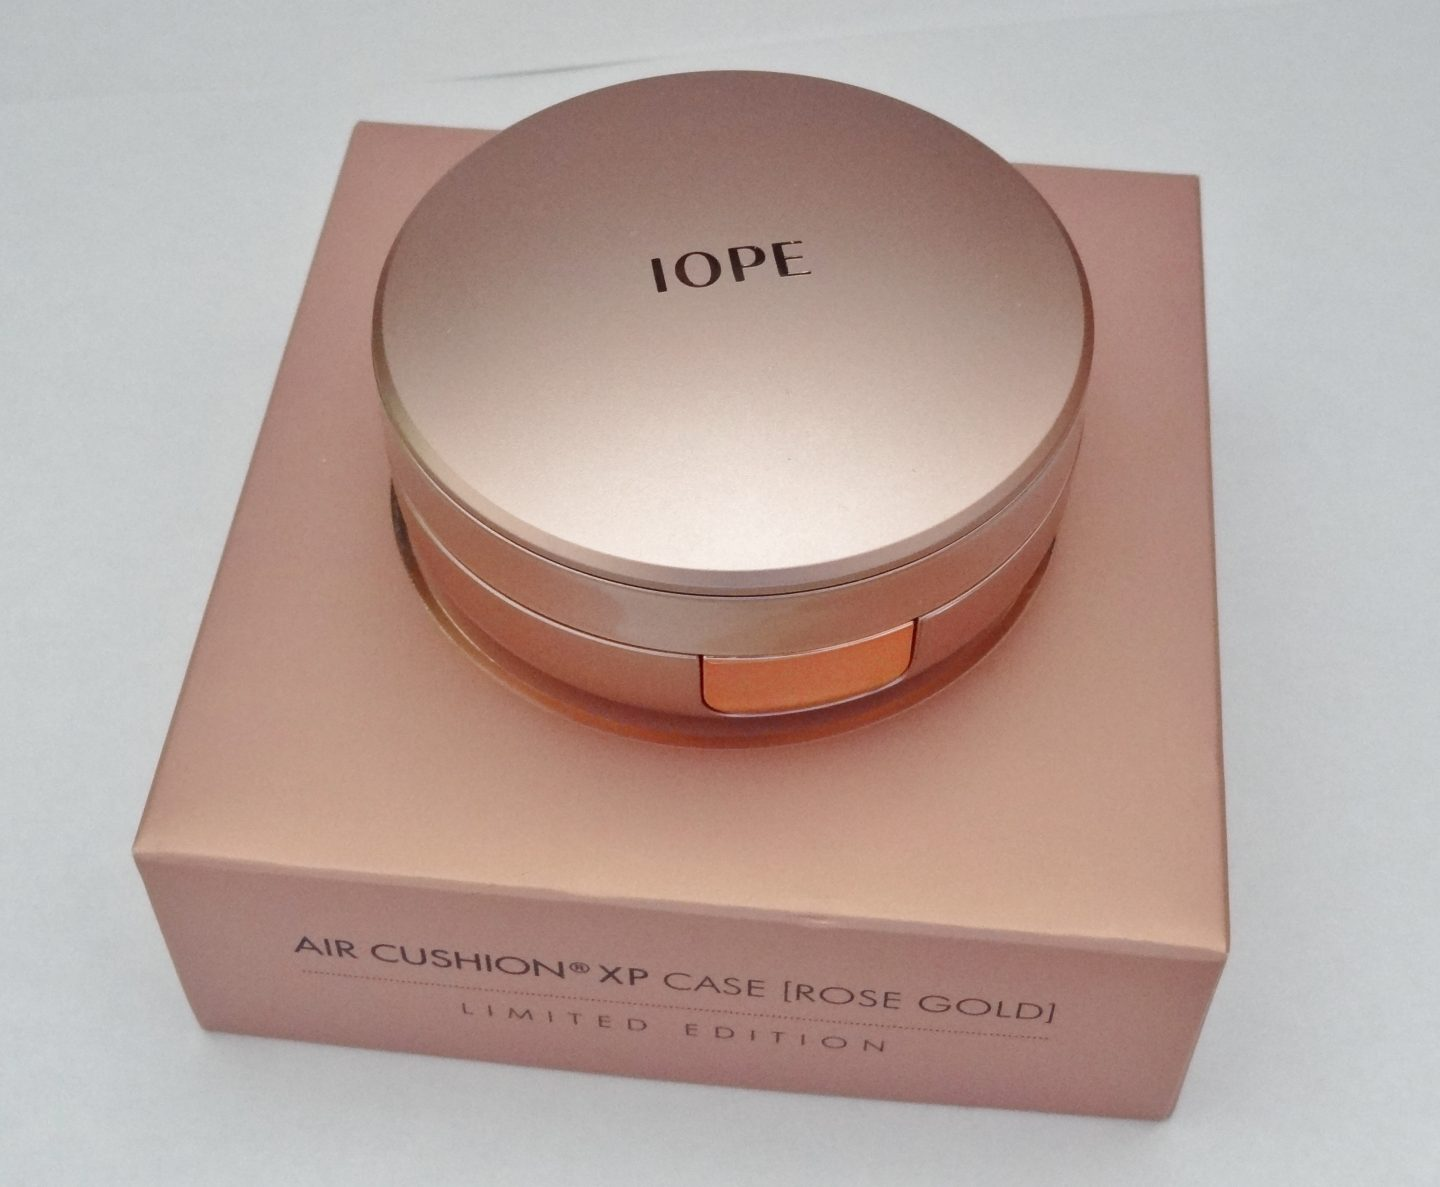 REVIEW: IOPE Air Cushion XP Matte Finish (No.23 Matte Beige)